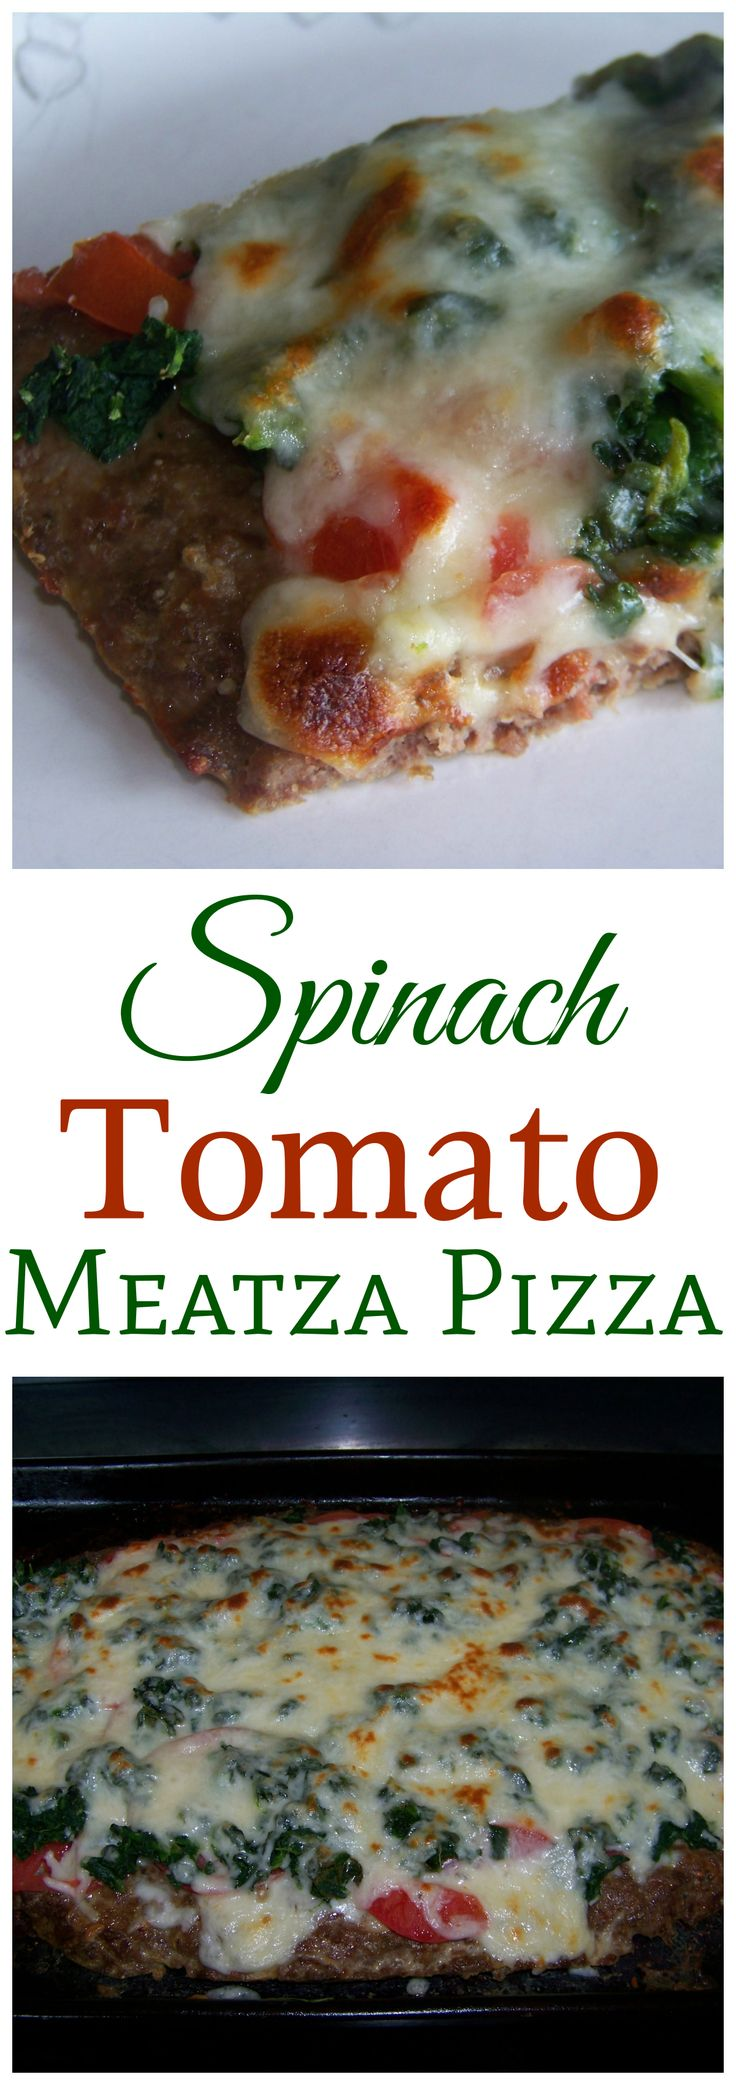 This low carb spinach tomato meatza pizza has a seasoned ground beef crust topped with tomato sauce and cheese. Customize this gluten free pizza with all your favorite toppings.